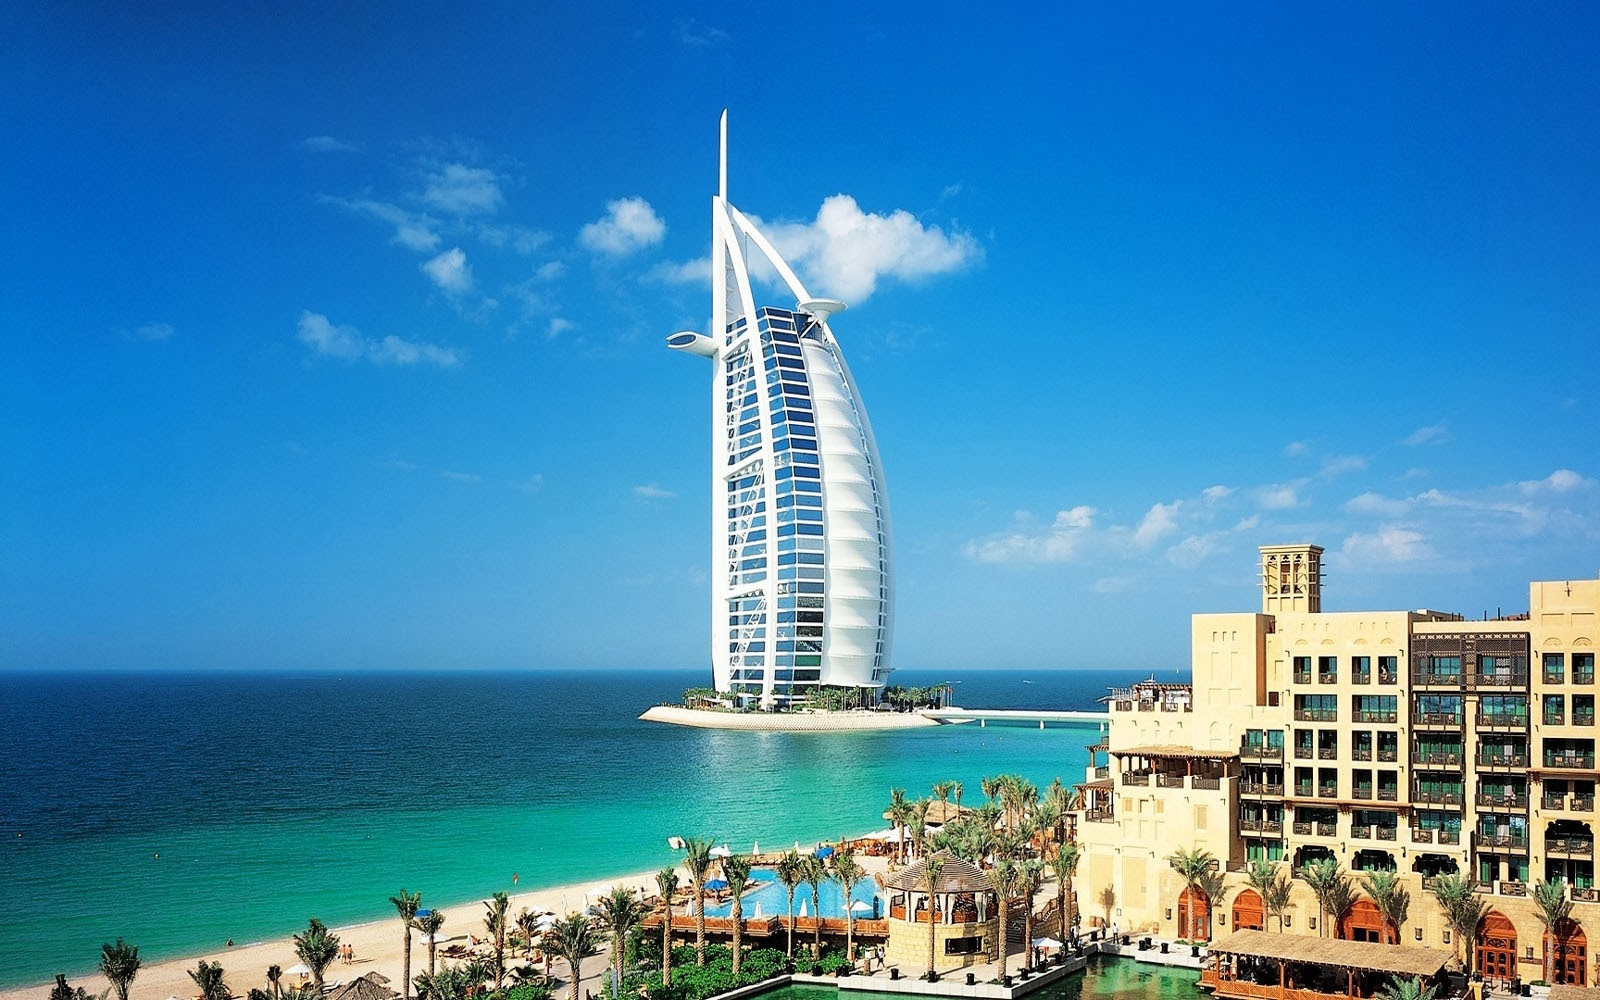 Wallpapers burj al arab hotel wallpapers for Hotel burj al arab